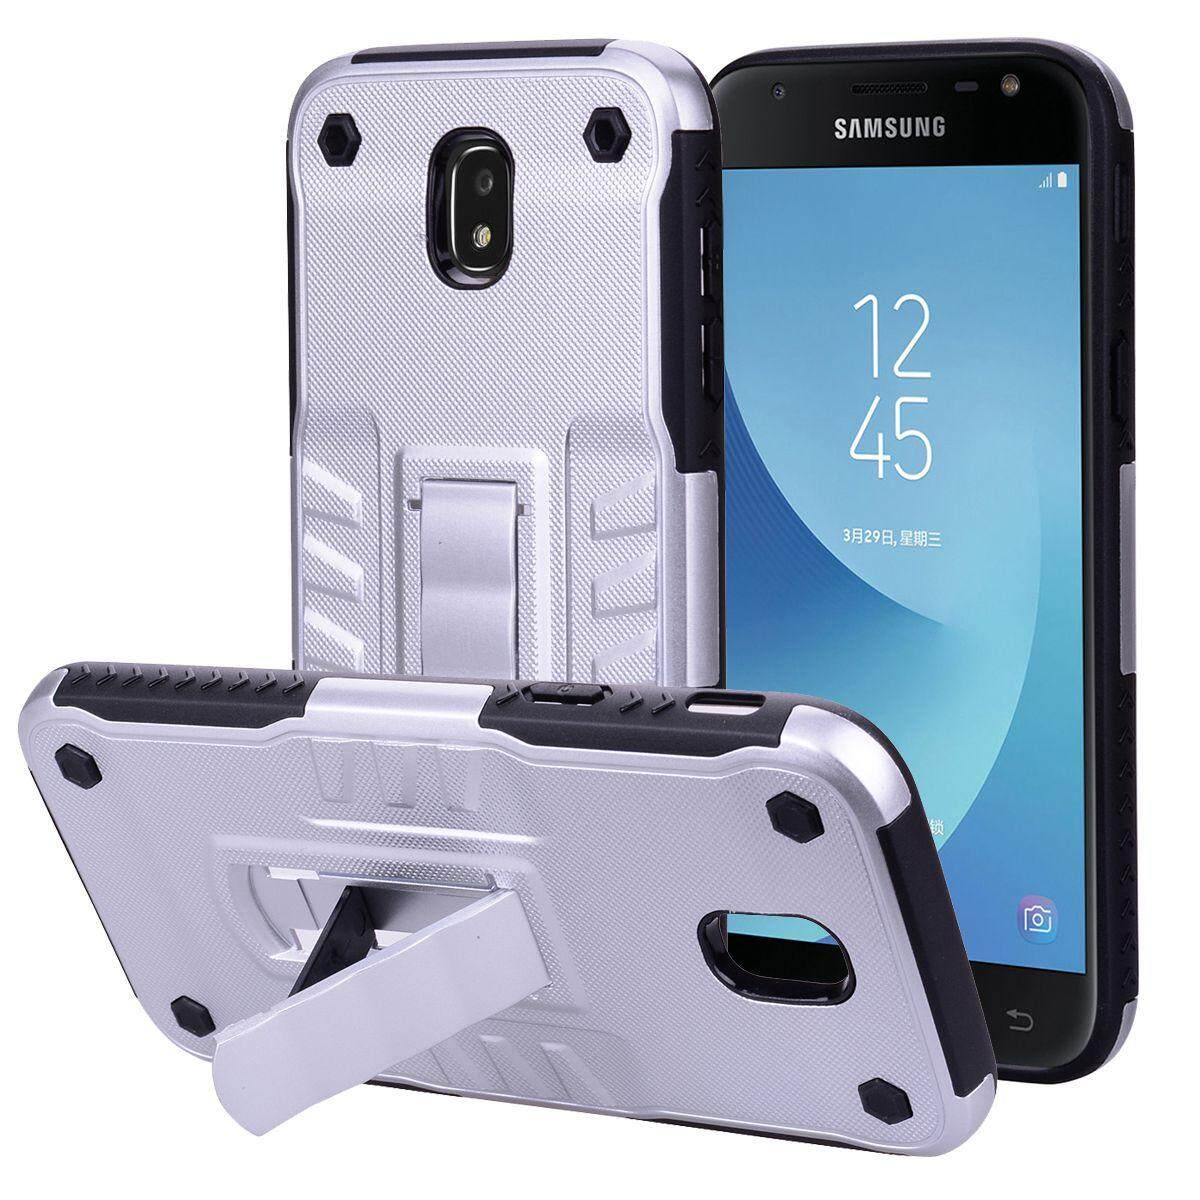 Features Rugged Football Design Case With Resilient Shock Absorption Samsung Galaxy A5 2016 Spigen Tough Armor Hybrid Back Hicase For J7 Pro J730 Heavy Anti Scratch 360 Protective